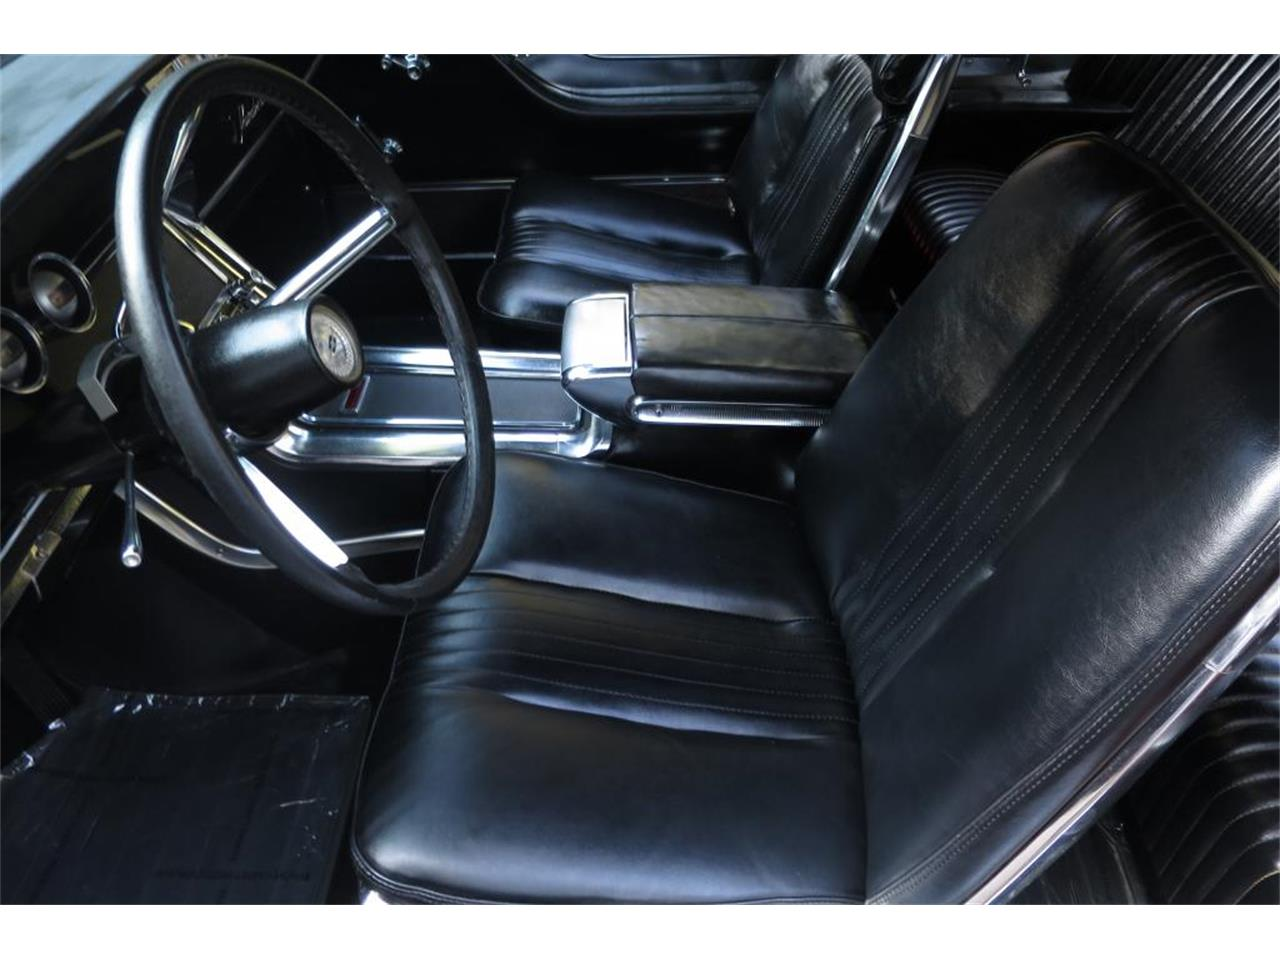 Large Picture of 1964 Ford Thunderbird located in Connecticut Auction Vehicle - LHHL